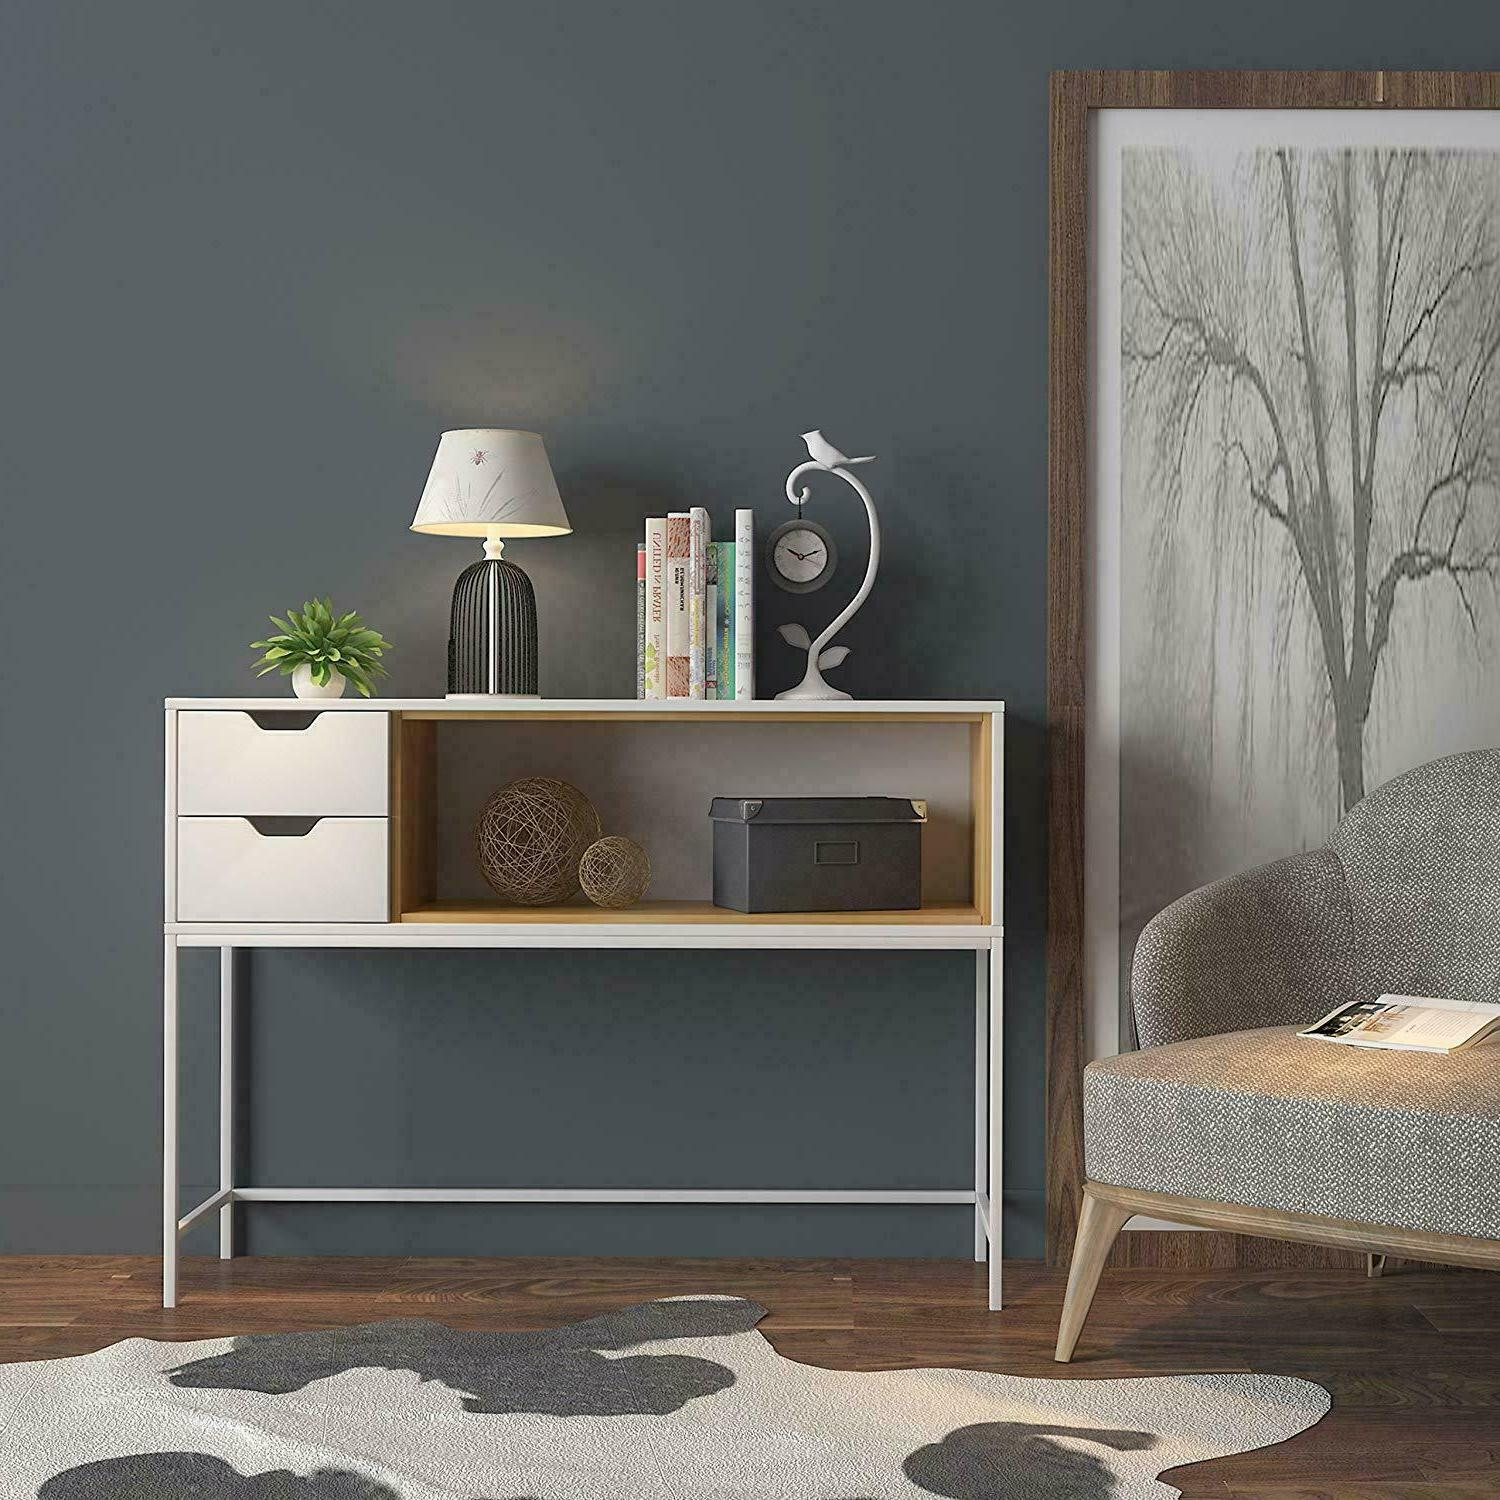 Narrow Entryway Furniture With Storage Drawers